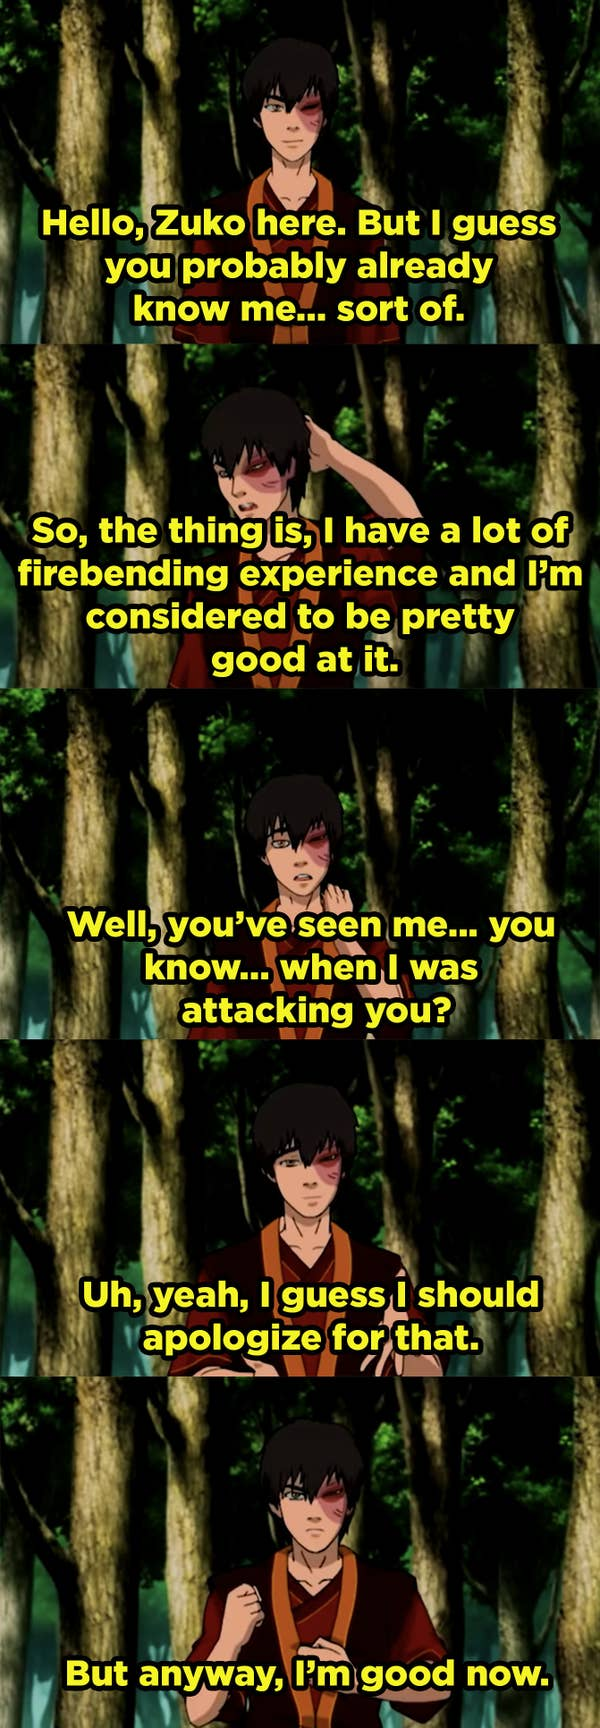 Zuko practicing his apology and saying that he's good now.